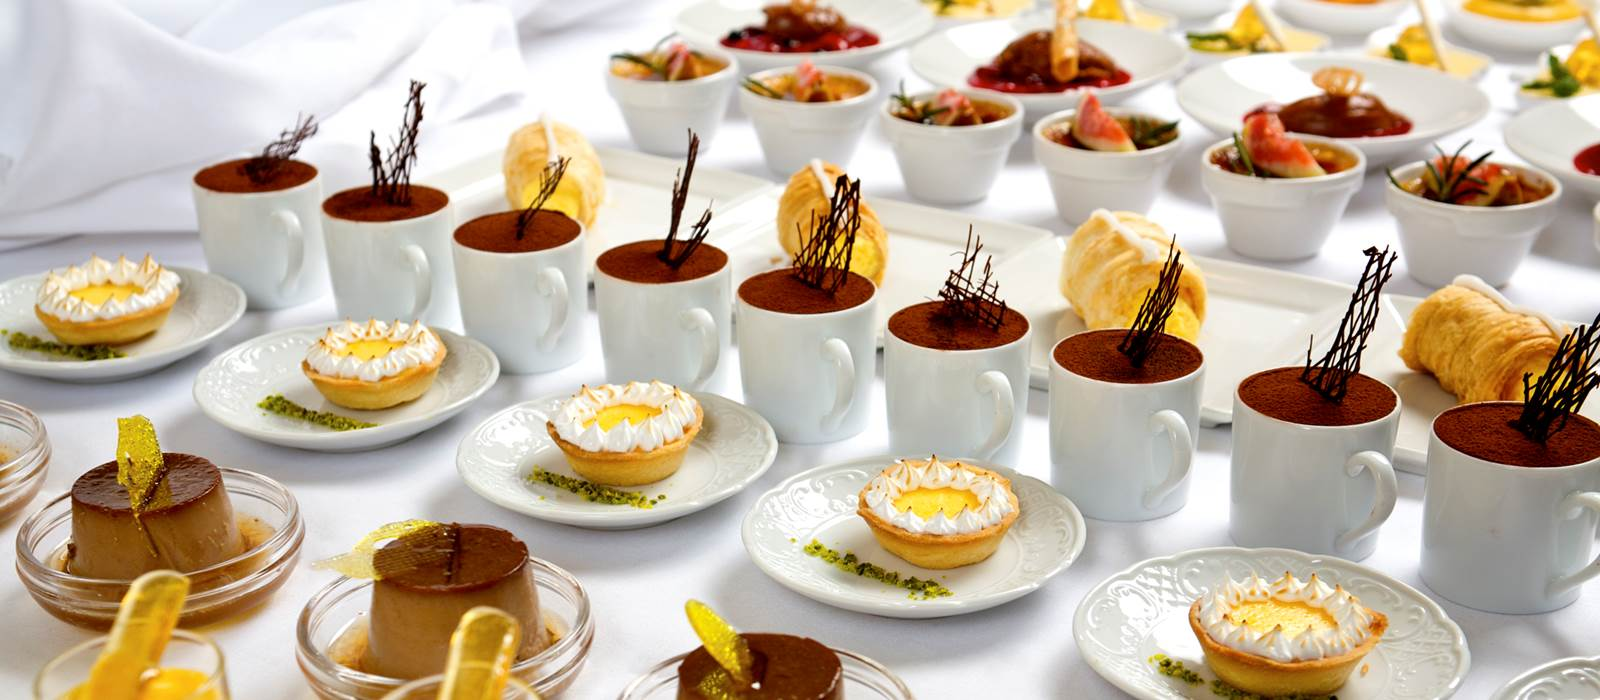 Catering Services in Chennai - Know Why Catering is Important in Wedding?